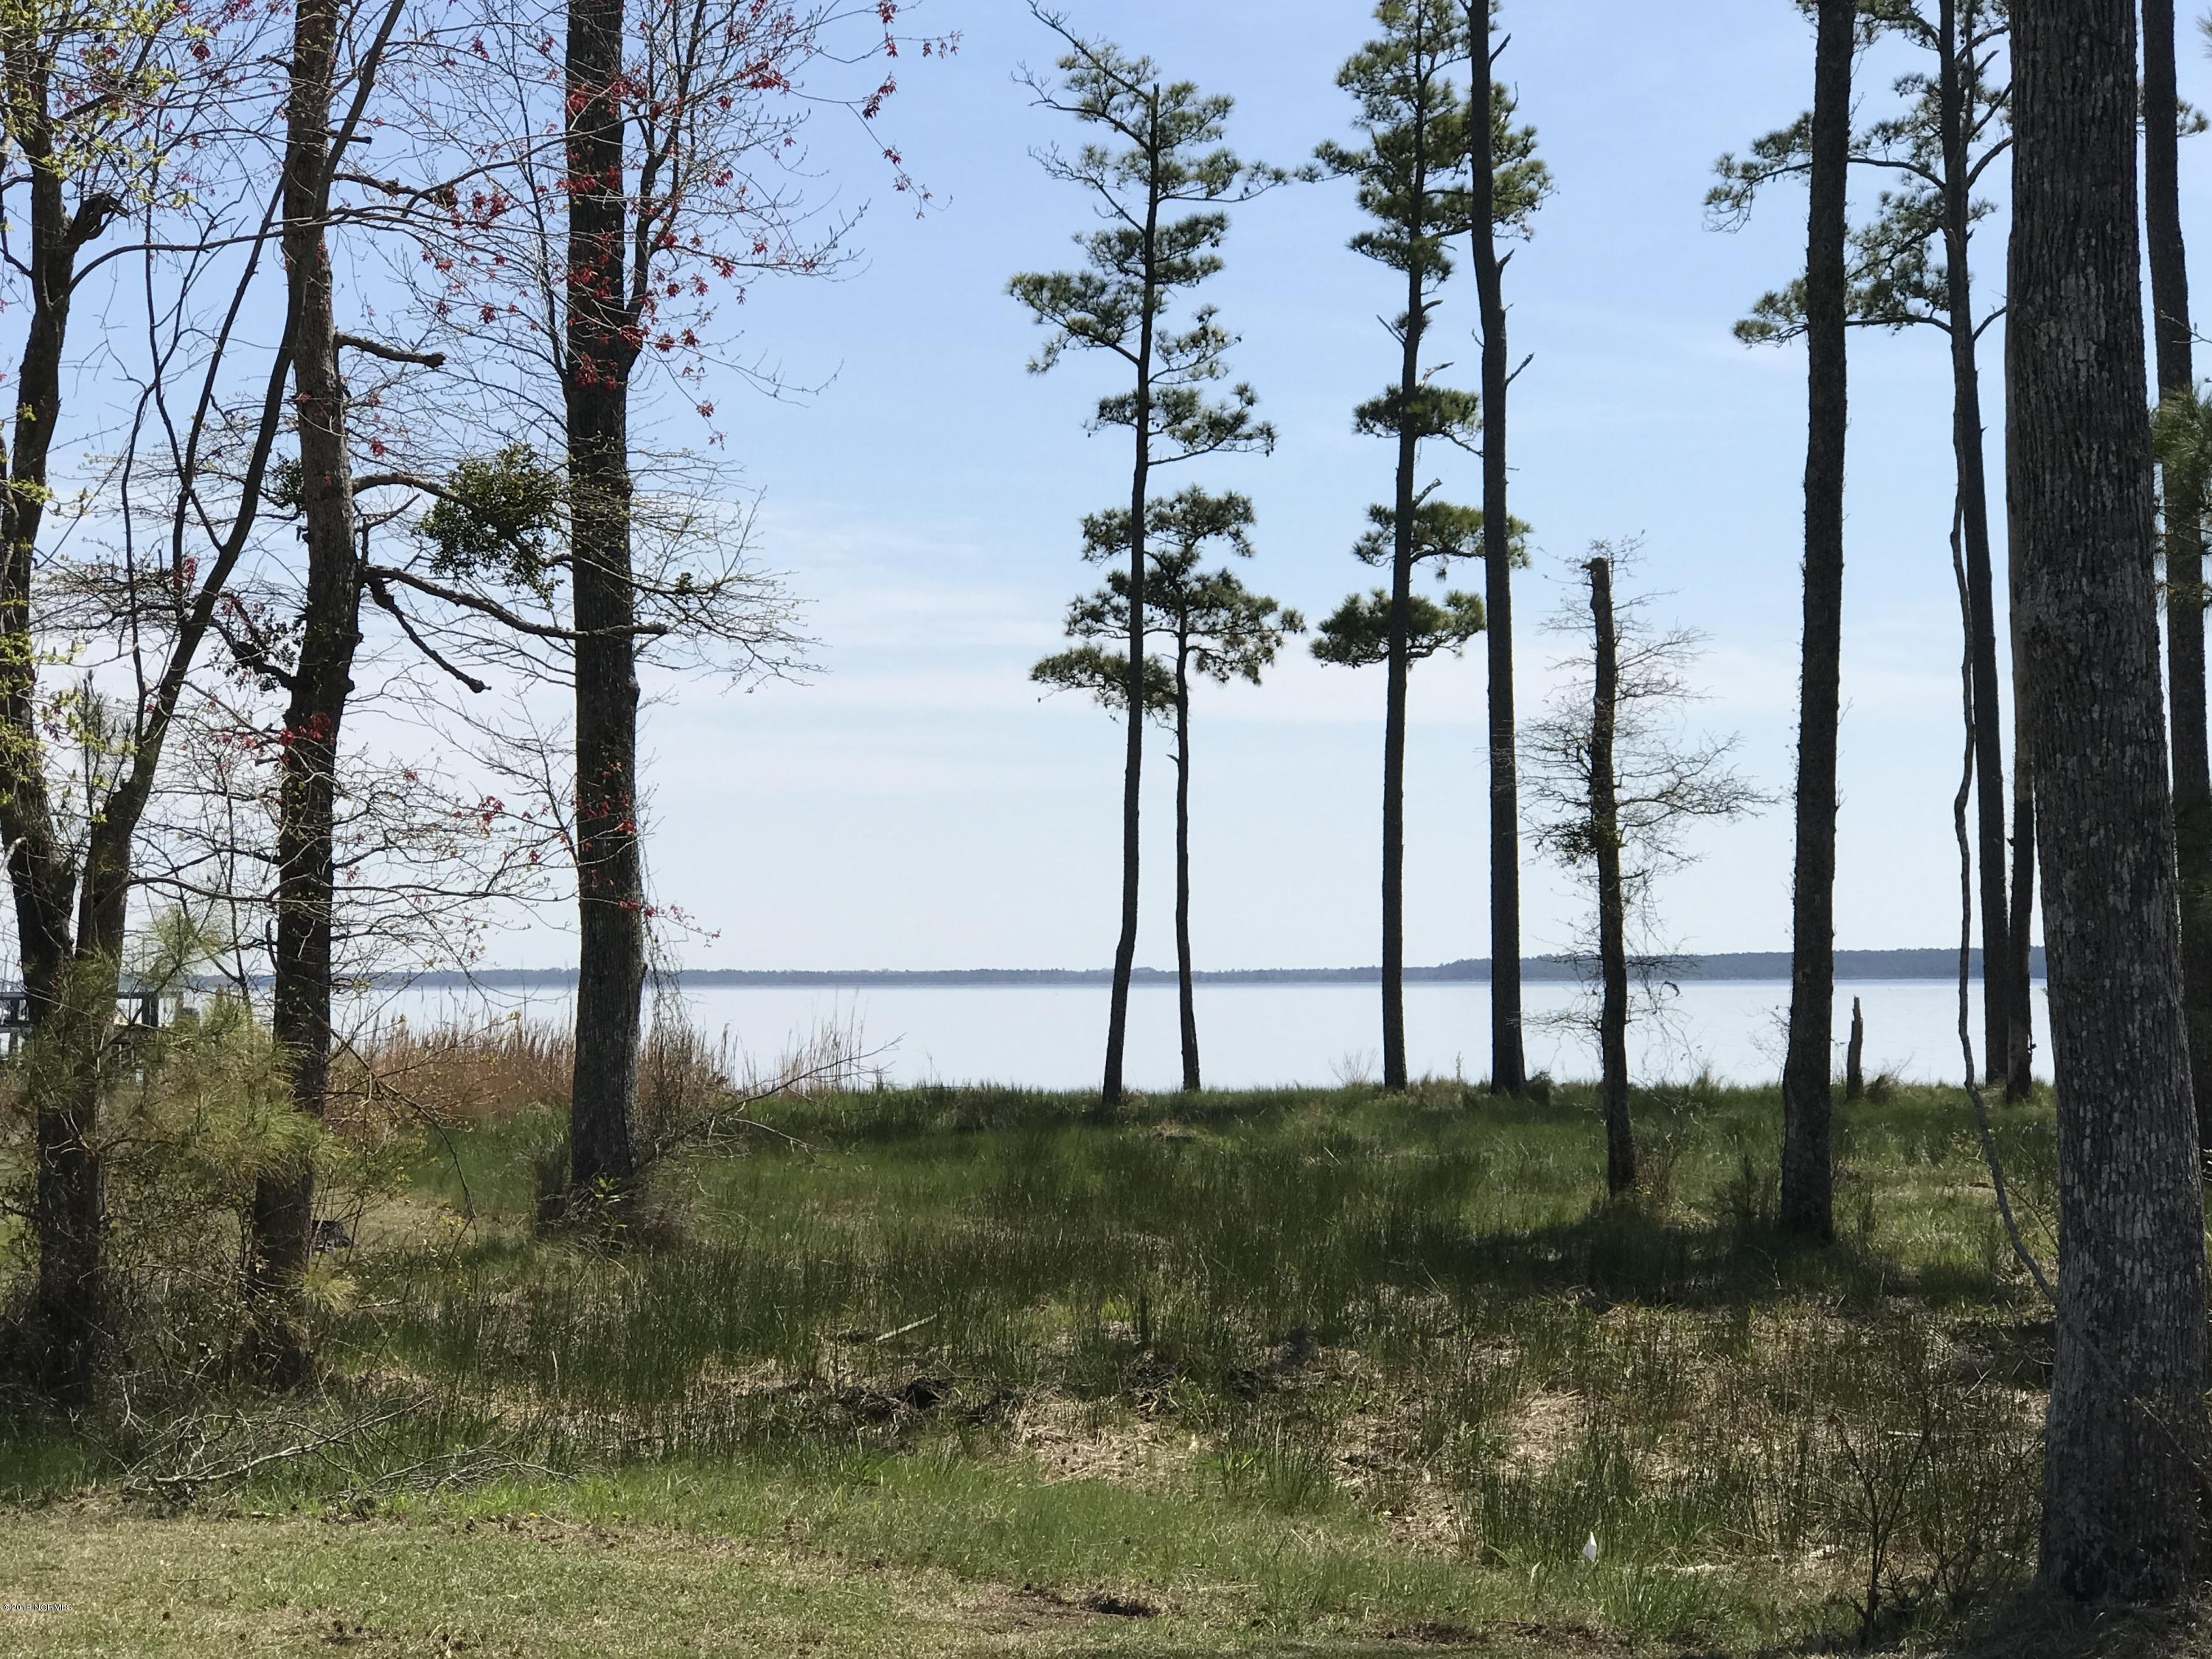 Lot 2 Dowry Creek, Belhaven, North Carolina 27810, ,Residential land,For sale,Dowry Creek,100157708